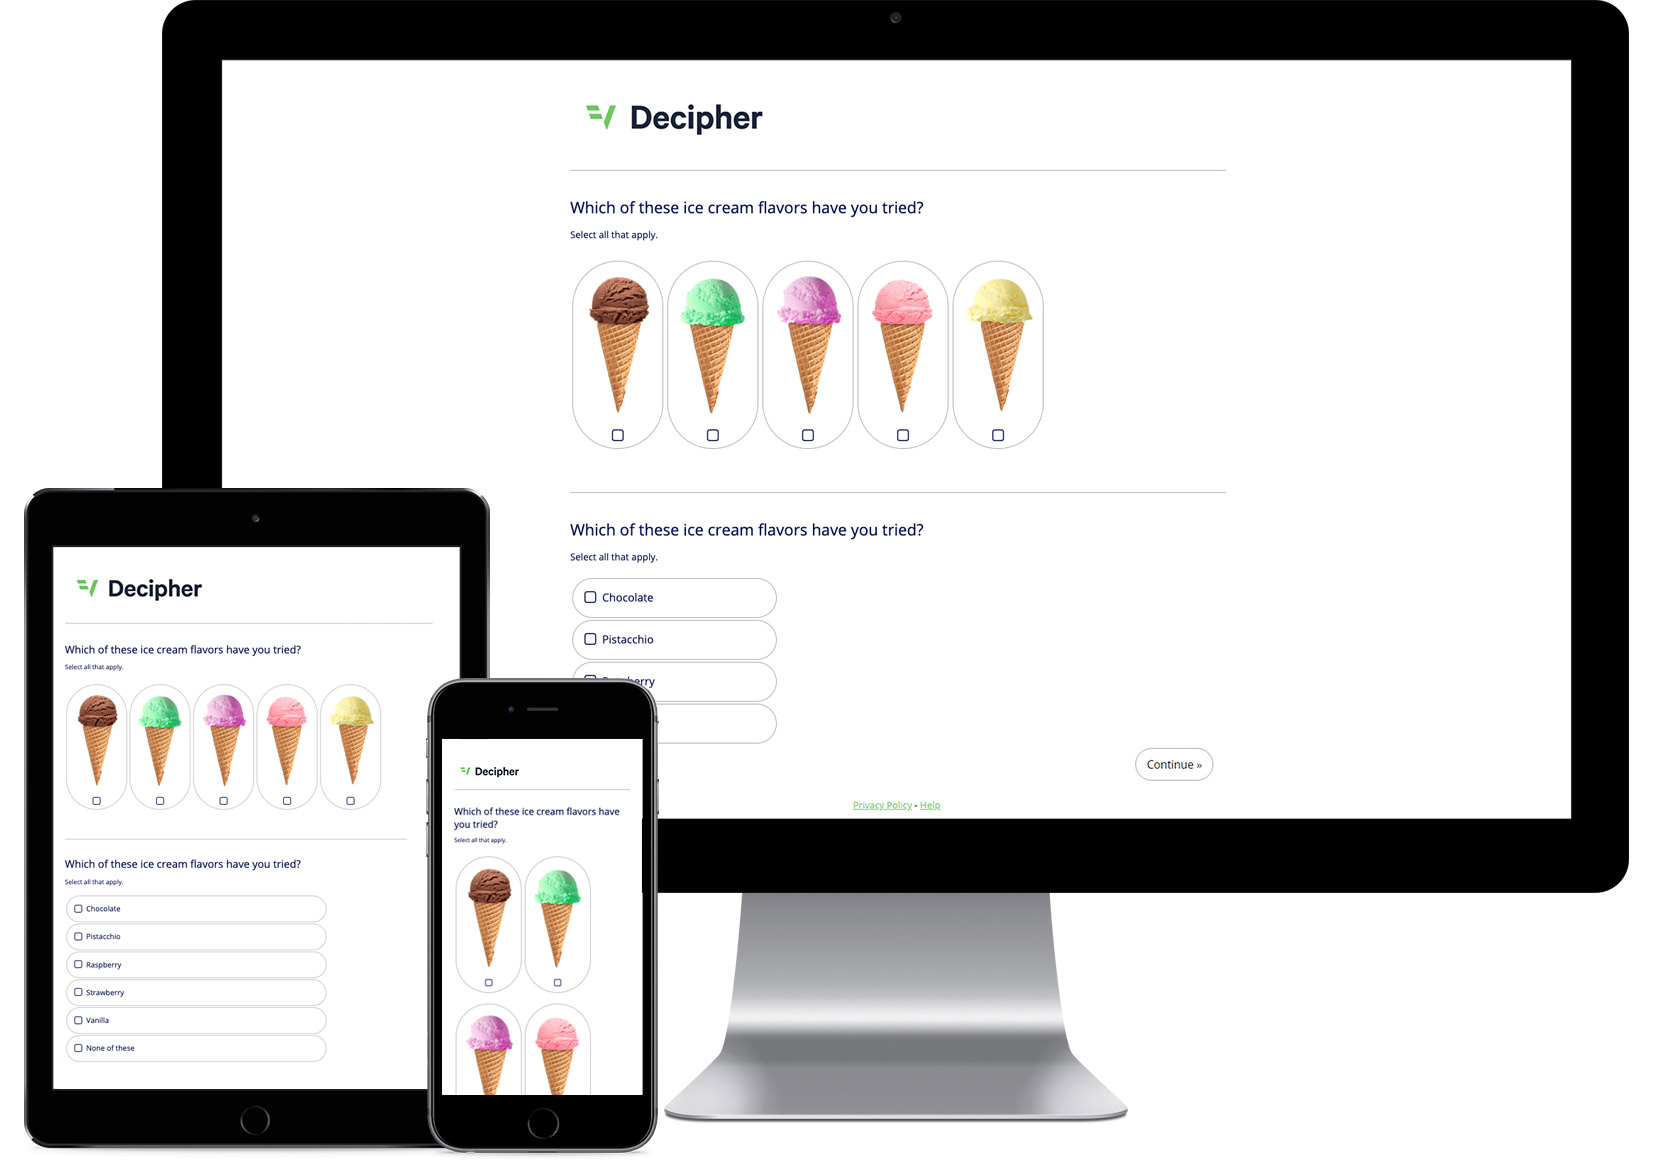 A survey created using Decipher's survey platform asking participants to identify which ice cream flavors they already tried.